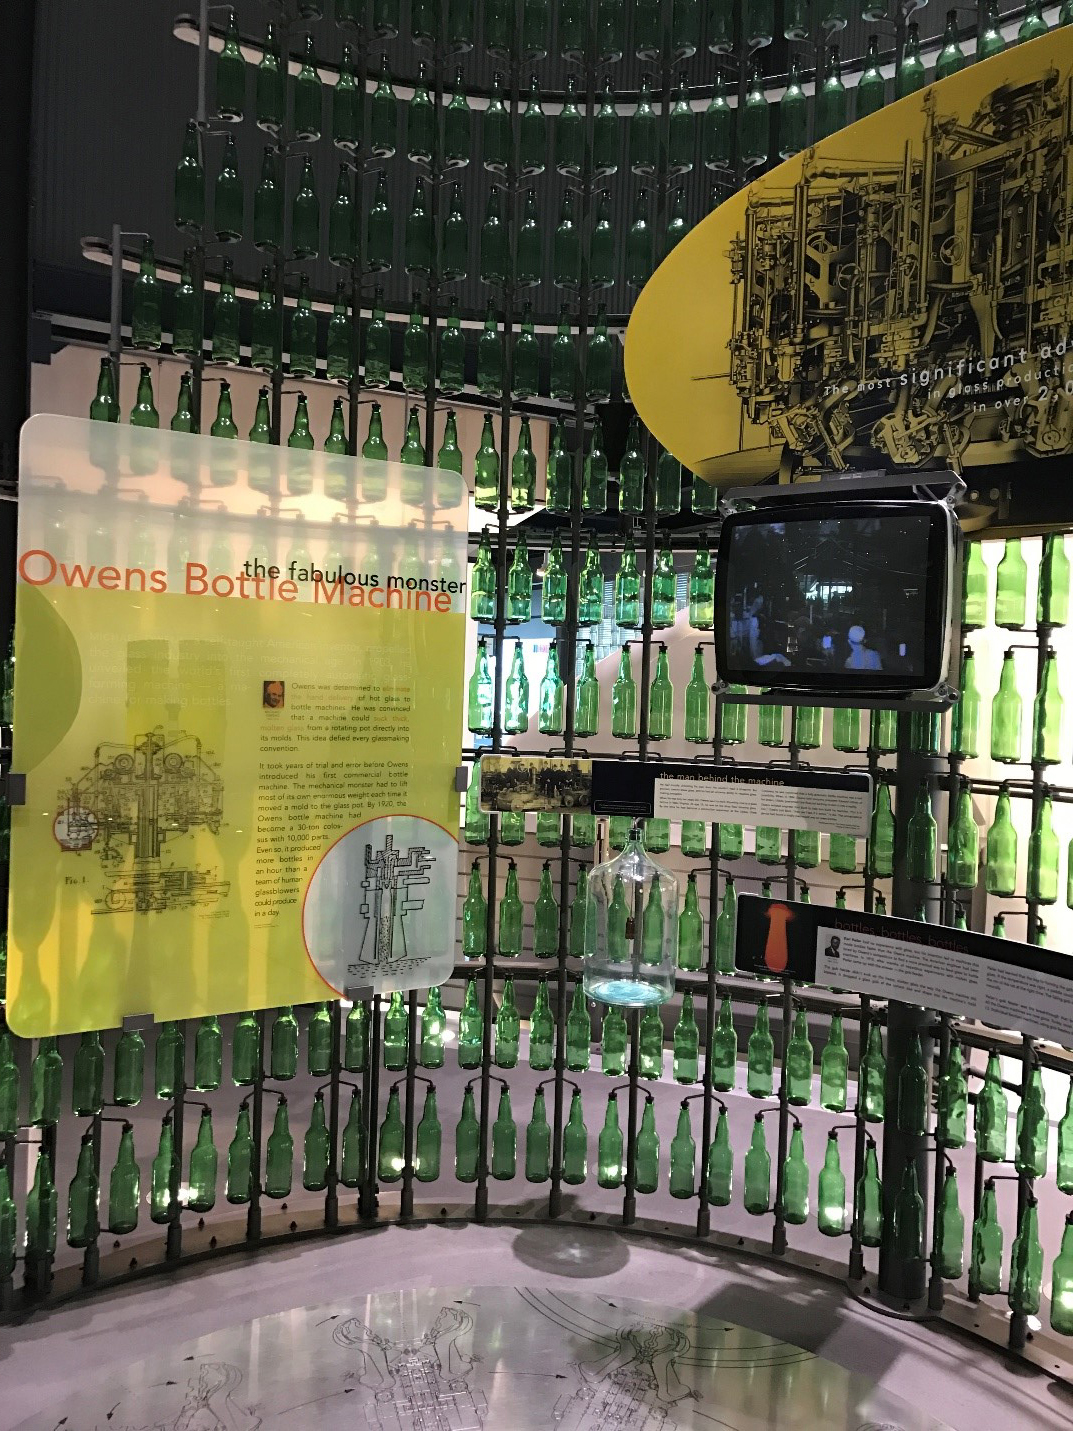 Our exhibit on the Owens Bottle Machine and the IS Bottle Machine.